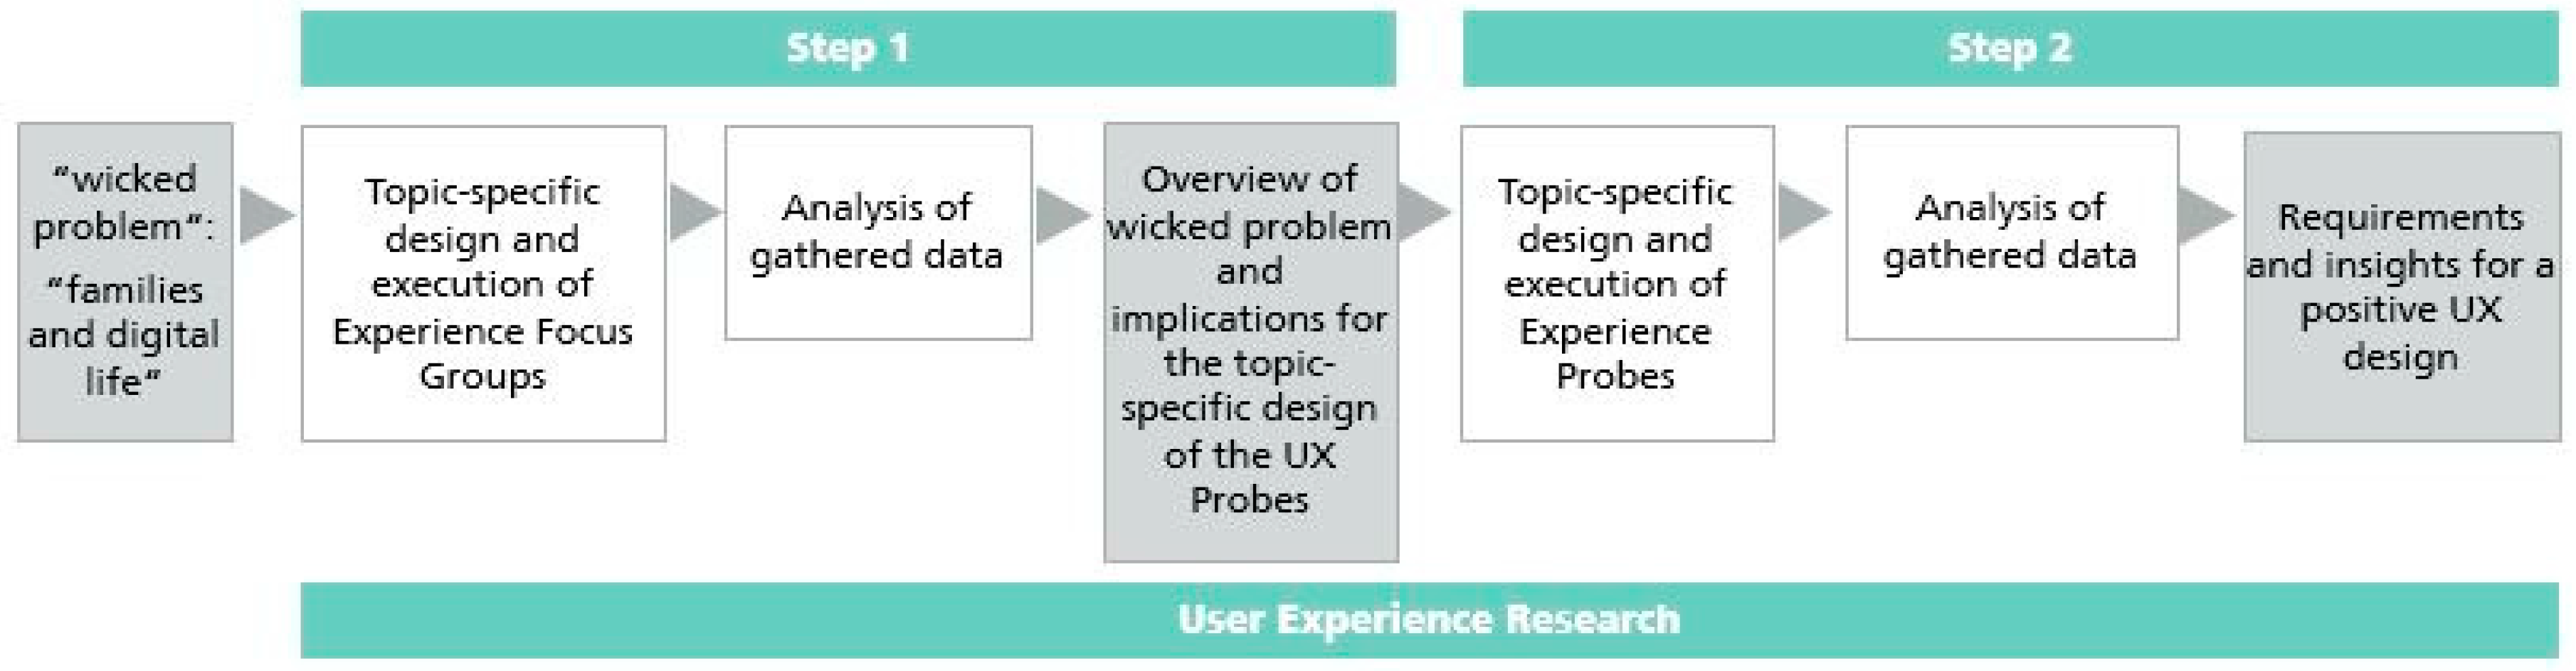 Mti Free Full Text Guided User Research Methods For Experience Design A New Approach To Focus Groups And Cultural Probes Html